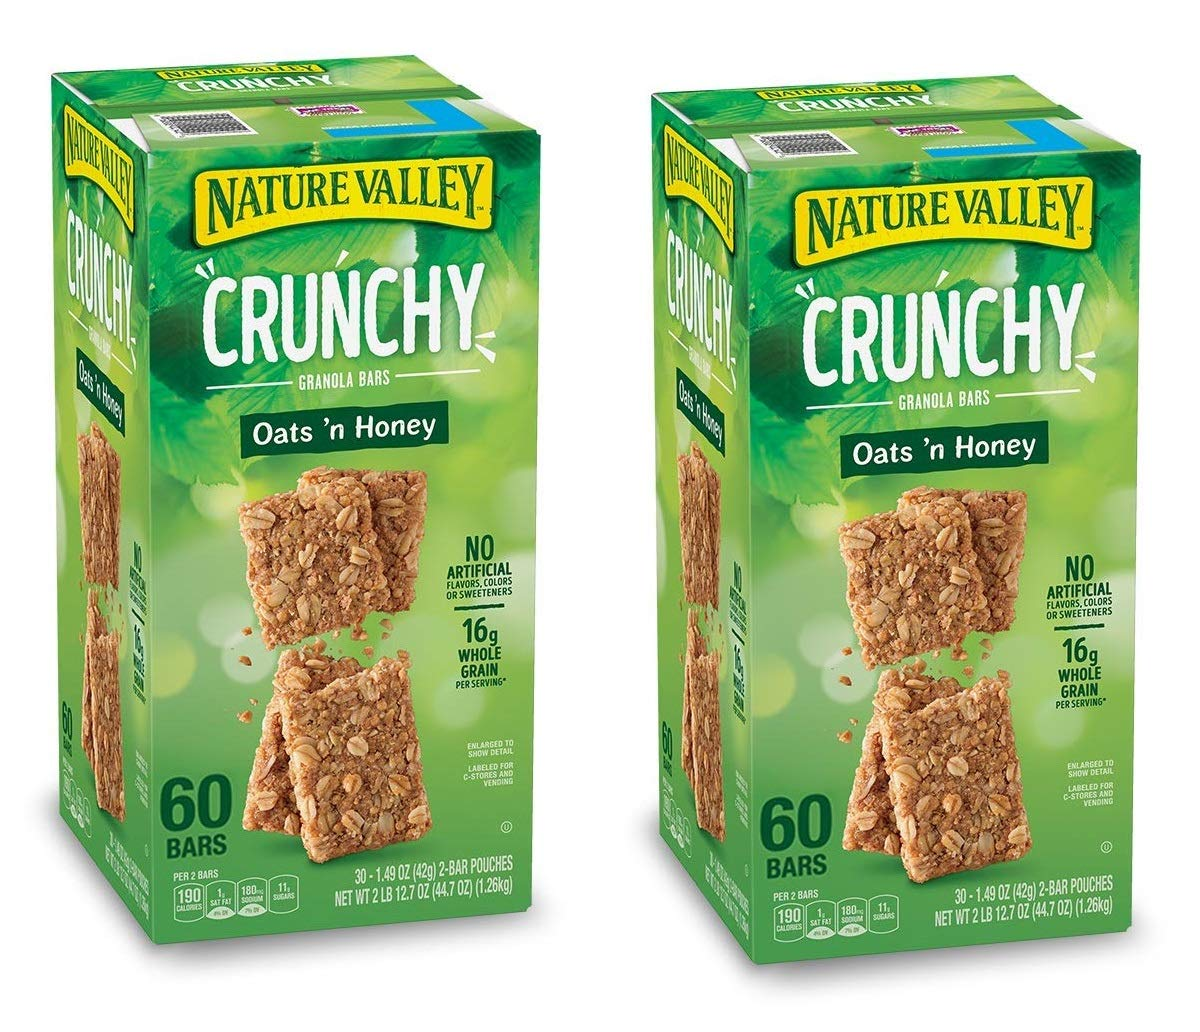 Natures Valley granola bars, Crunchy Oats N Honey, 60 Bars (2 Boxes) by Nature Valley (Image #1)